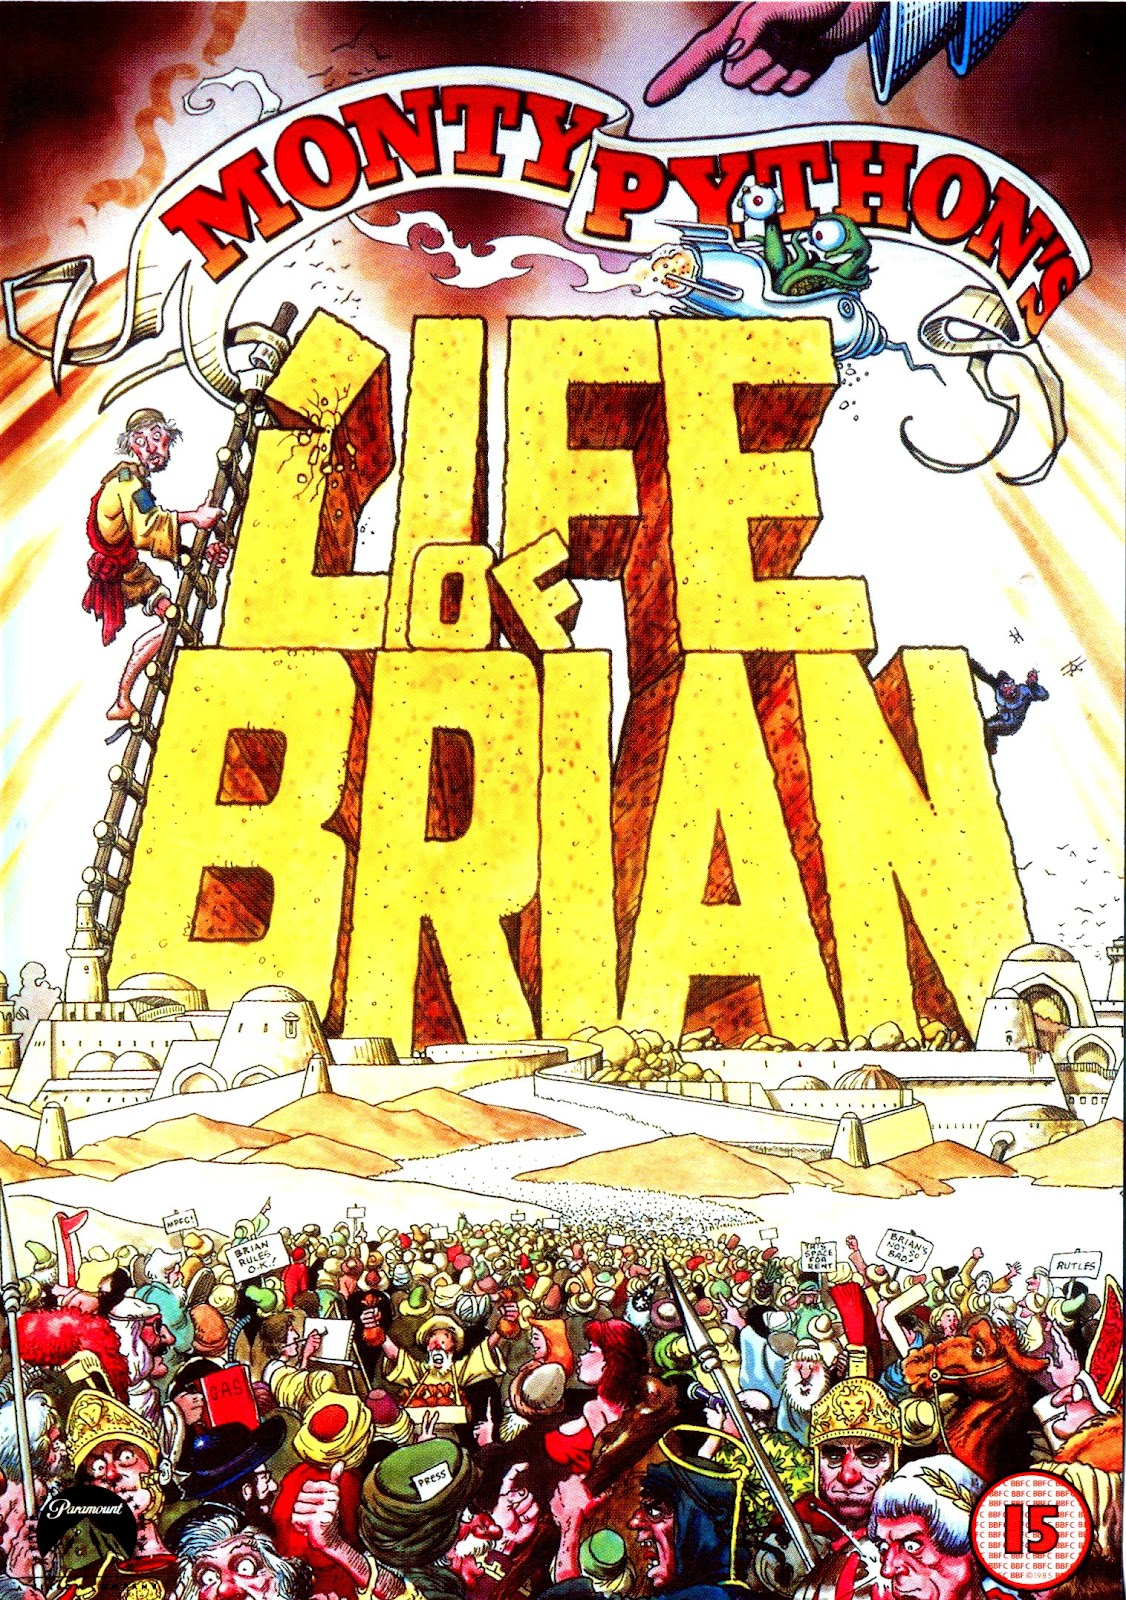 31. Monty Python's Life of Brian (1979)